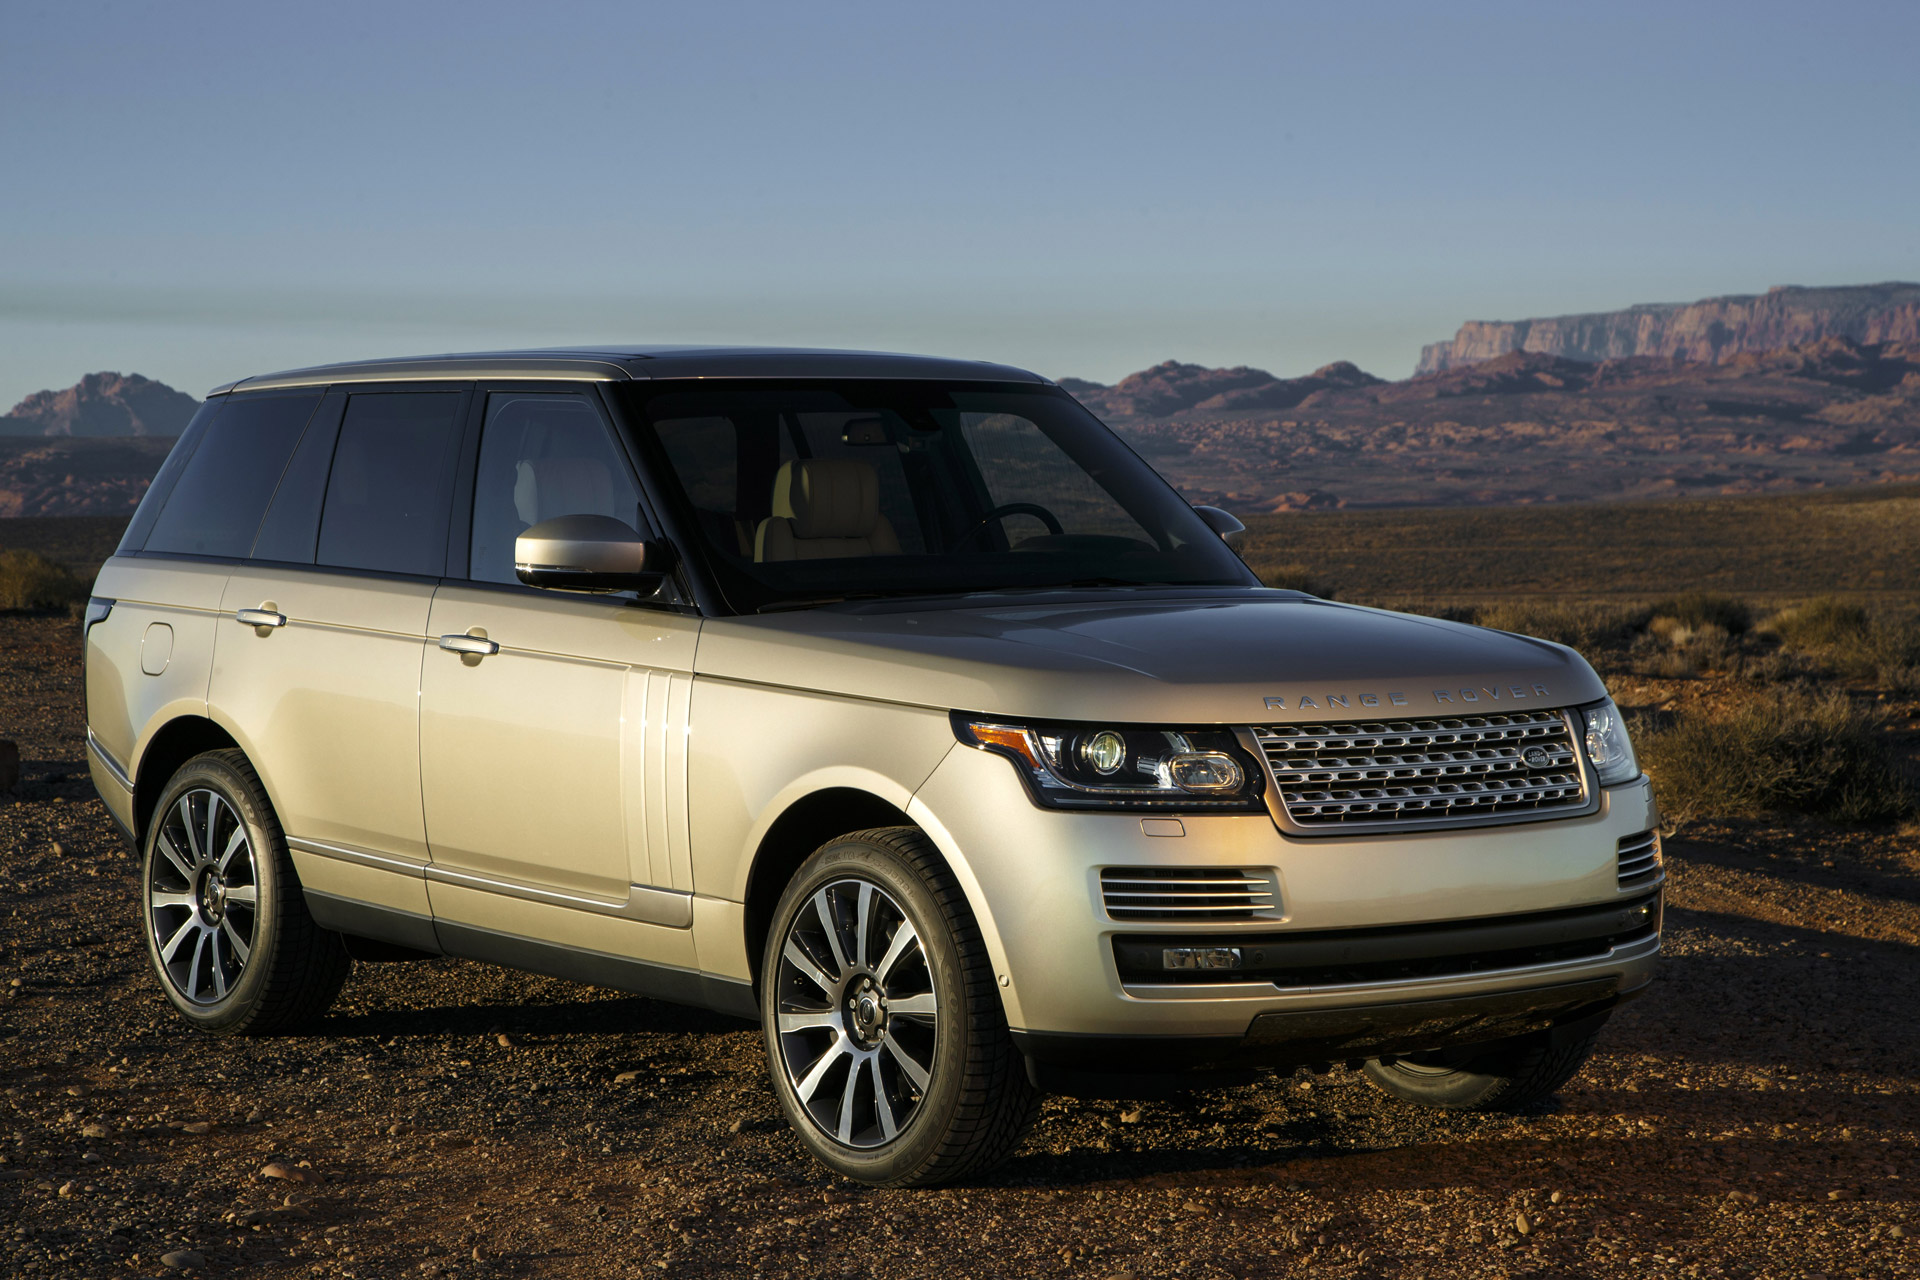 Land Rover Denver Used Cars